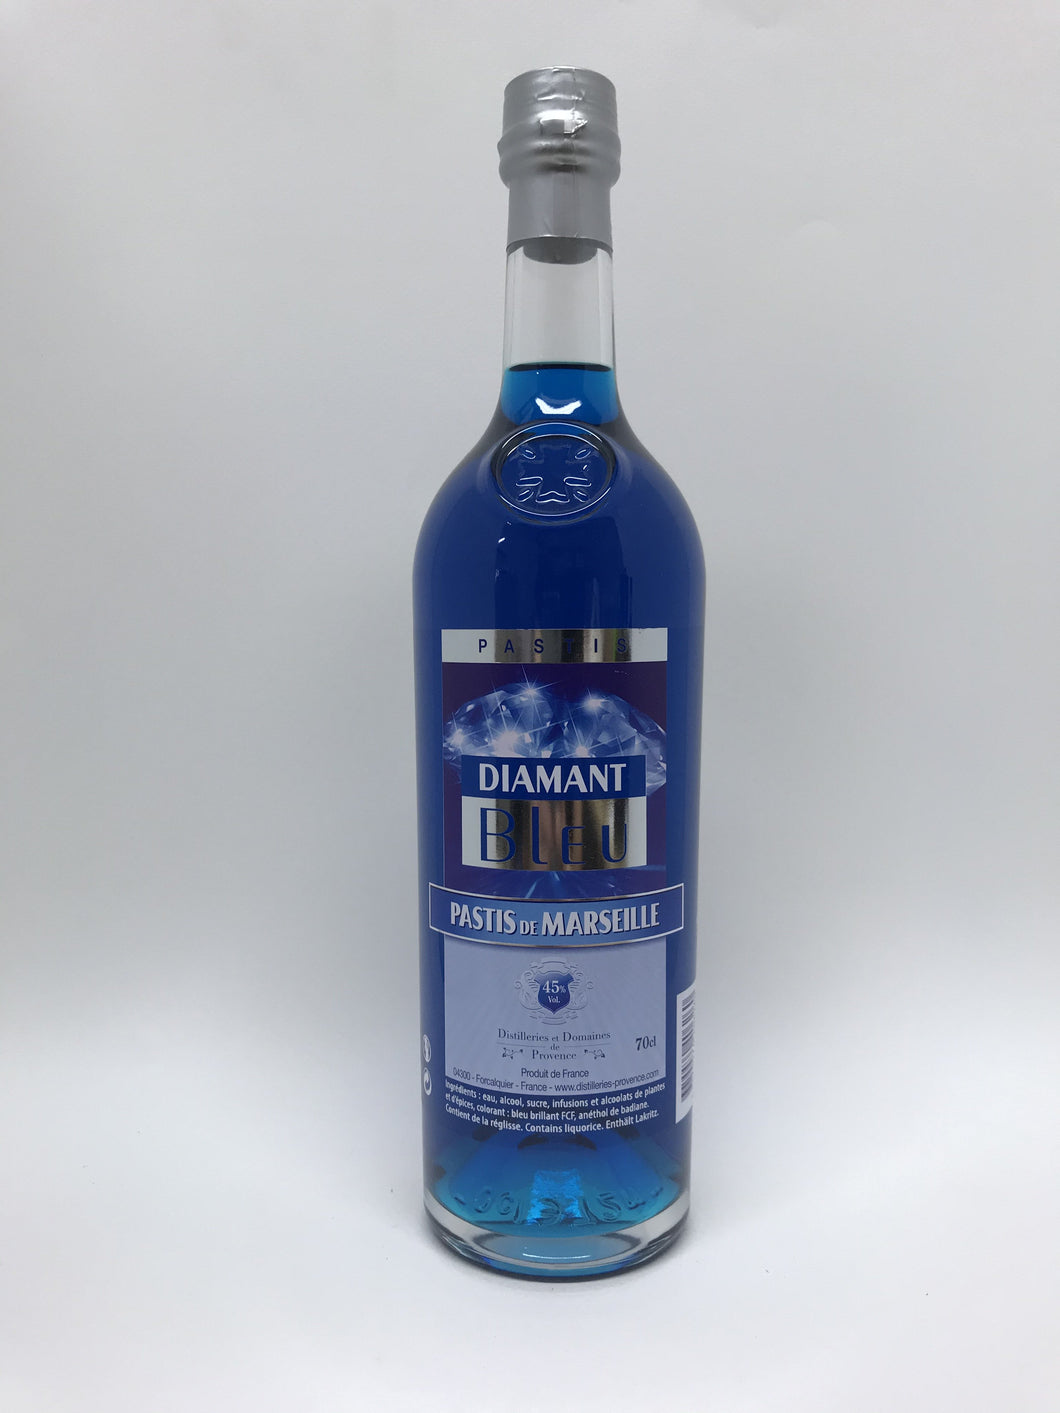 Diamant Bleu - Pastis de Marseille 700ml